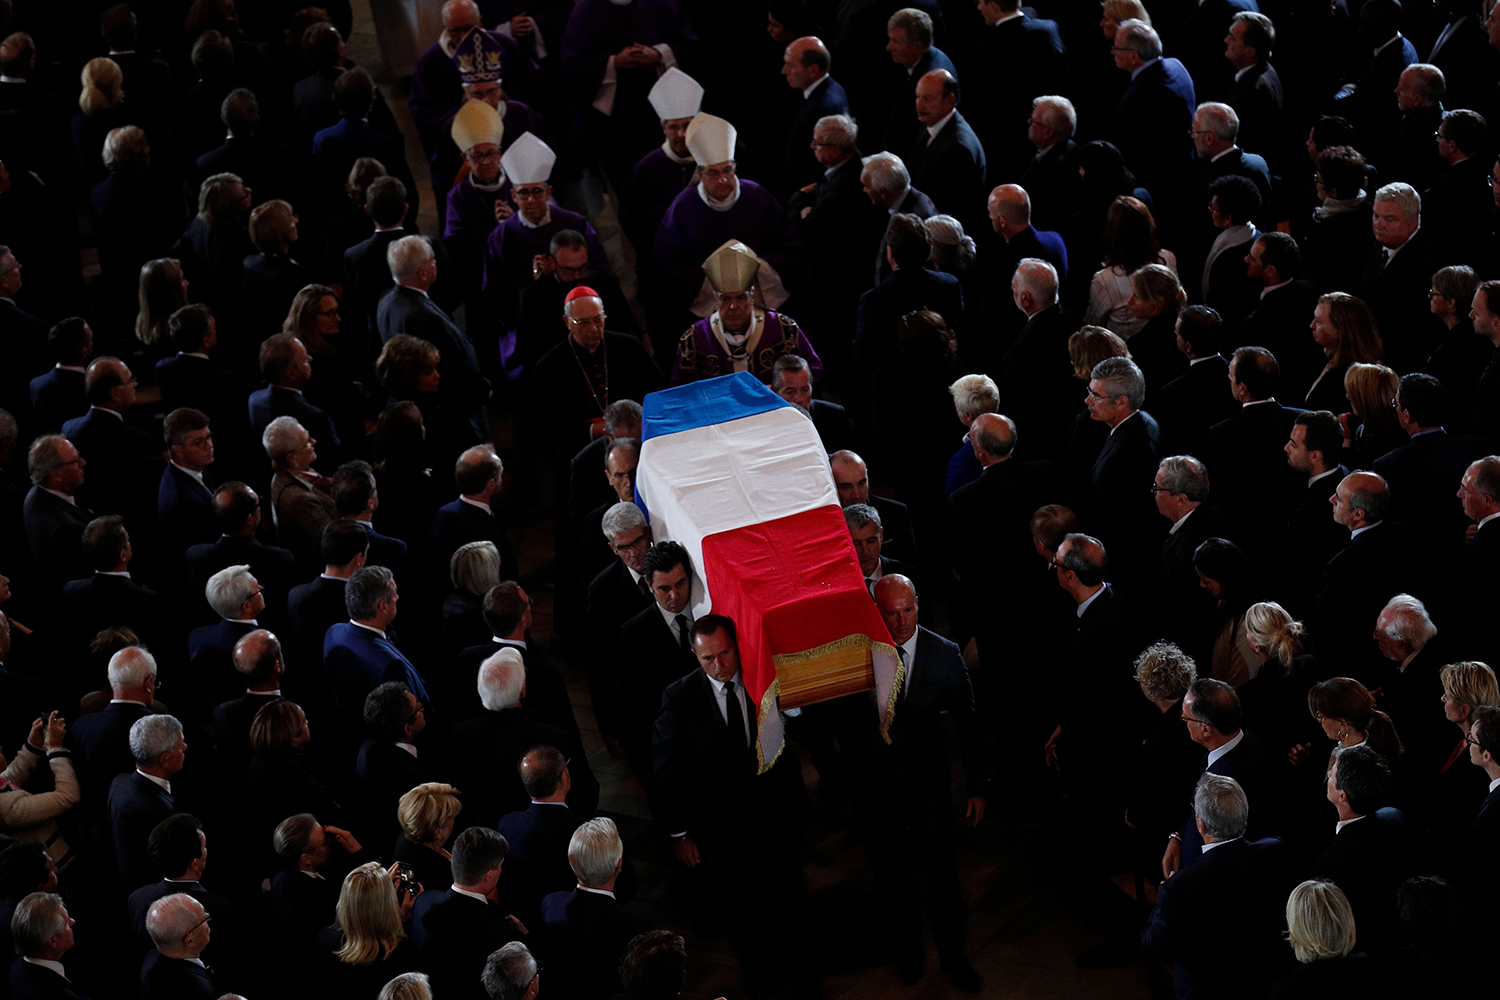 The coffin of the late French president Jacques Chirac is carried from the Saint Sulpice Church in Paris following his funeral service on Sept. 30. FRANCOIS MORI/AFP/Getty Images